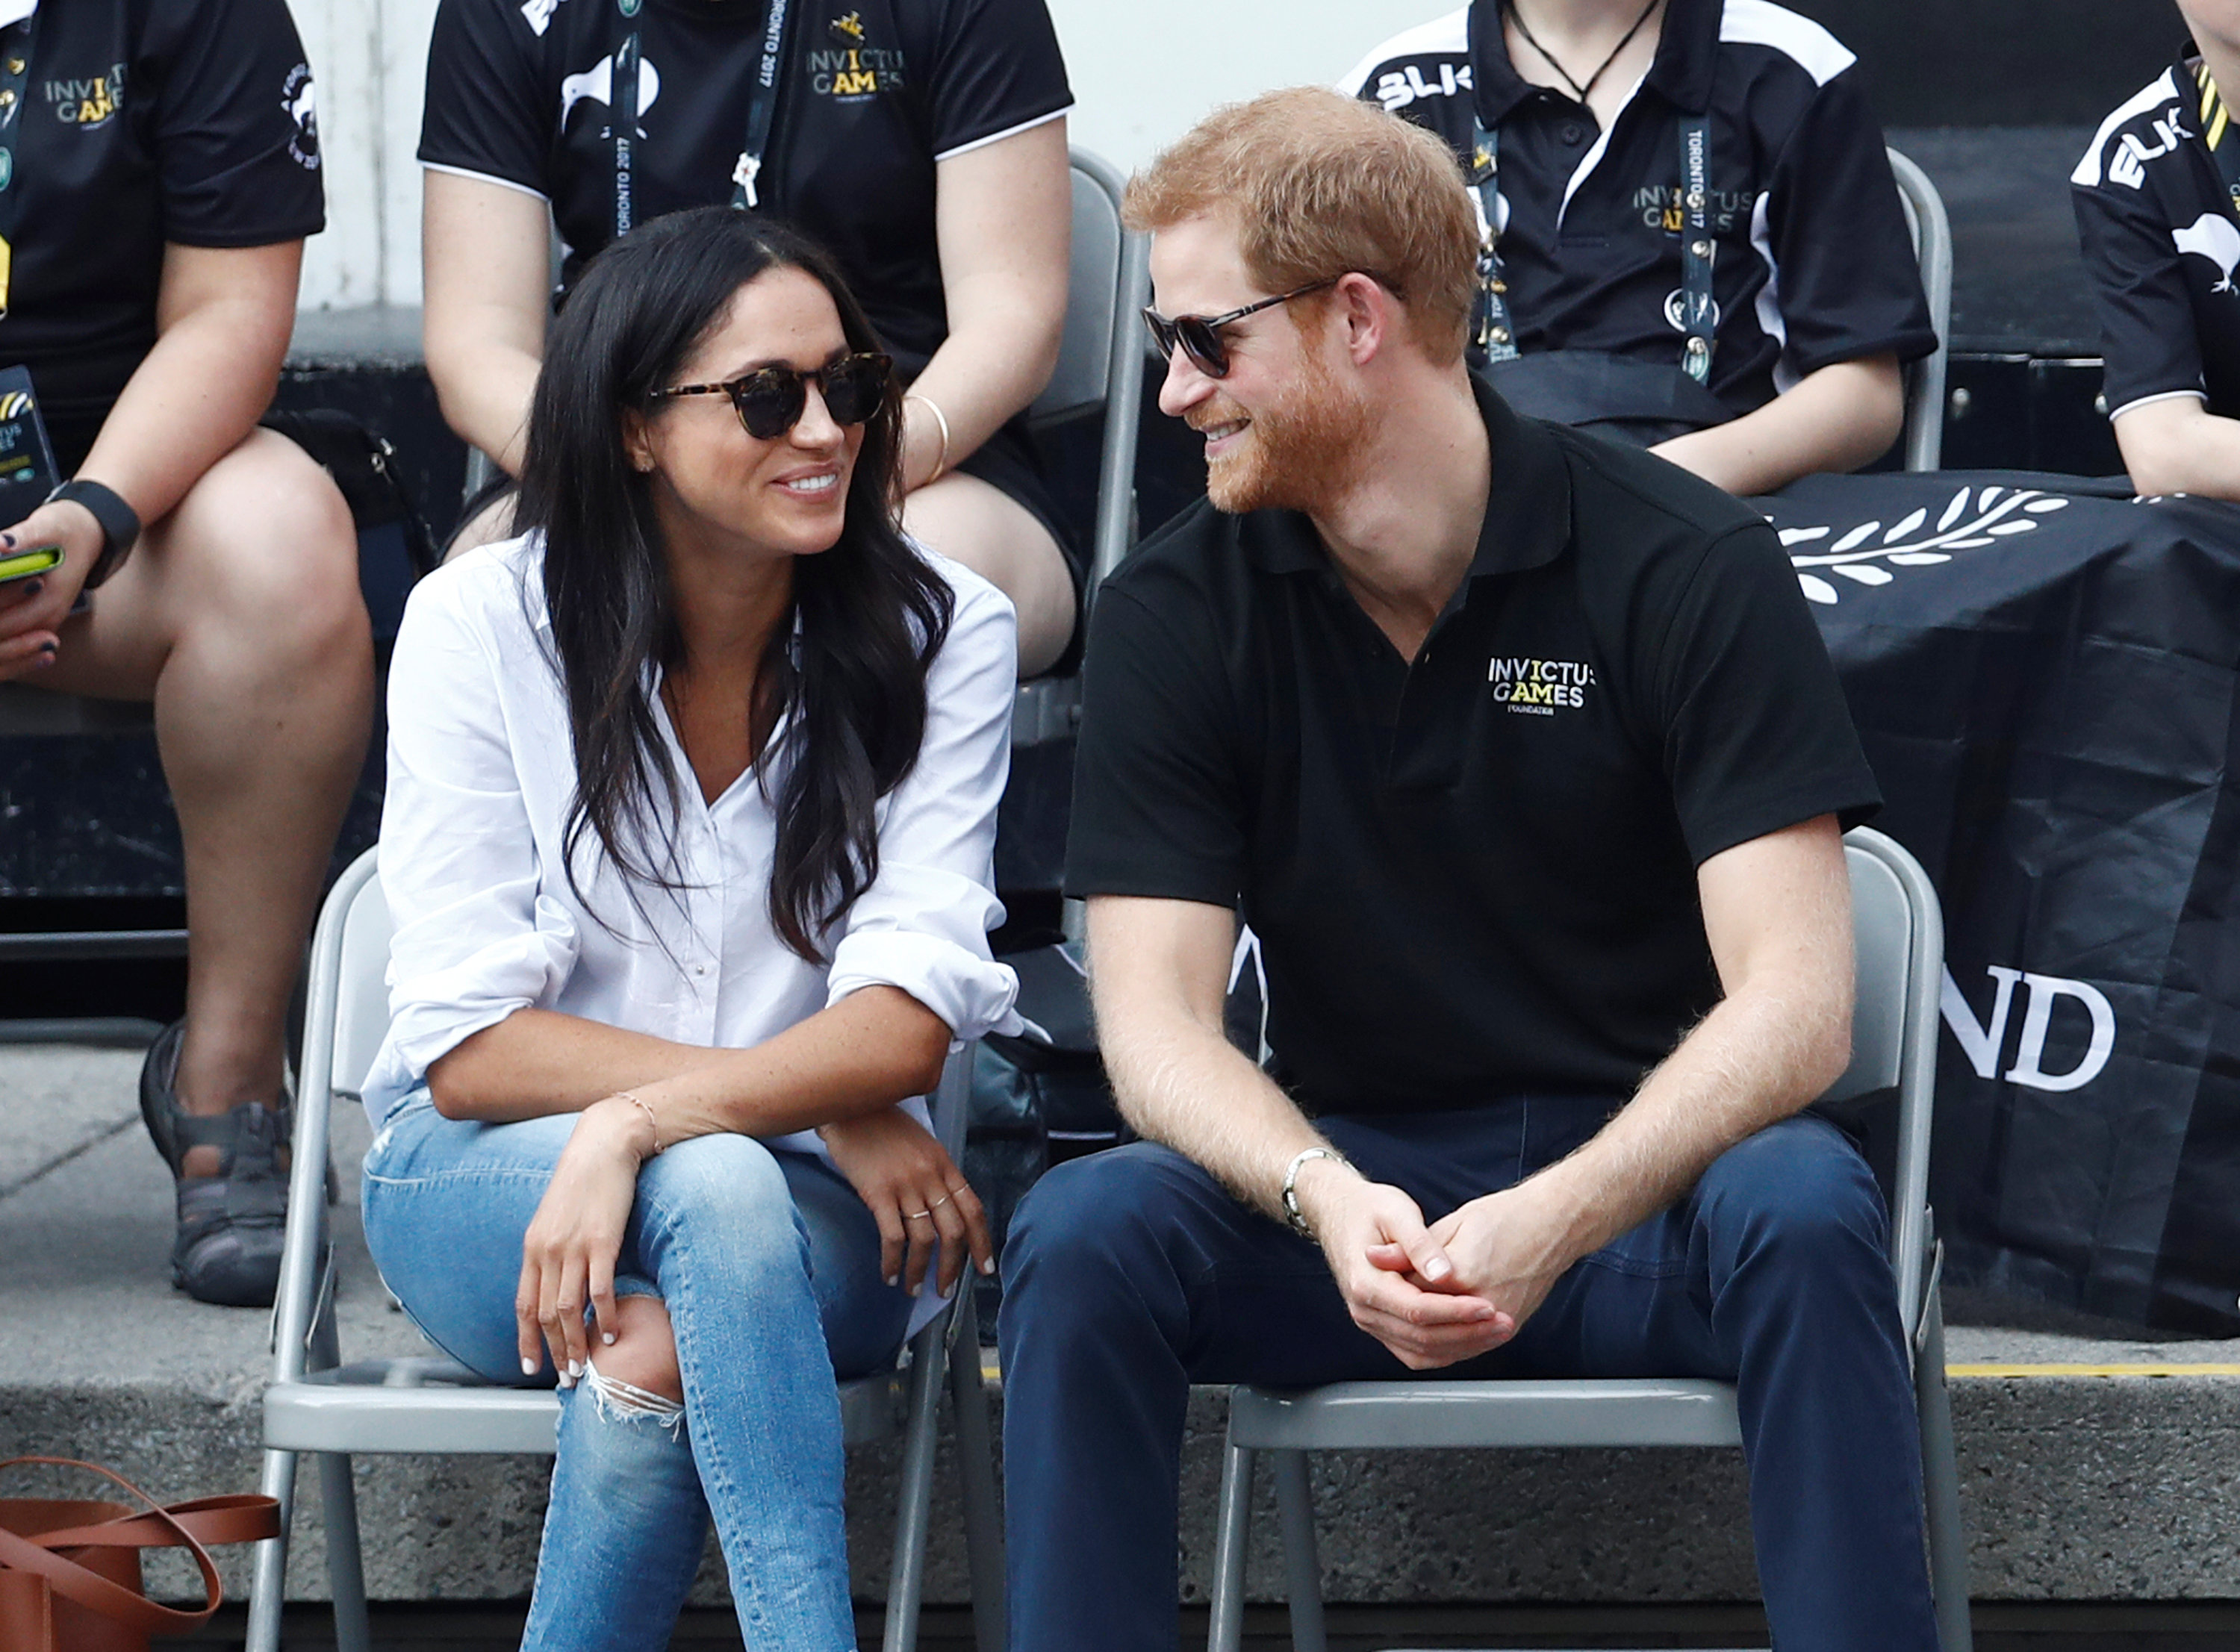 What's-next-for-this-Royal-Couple